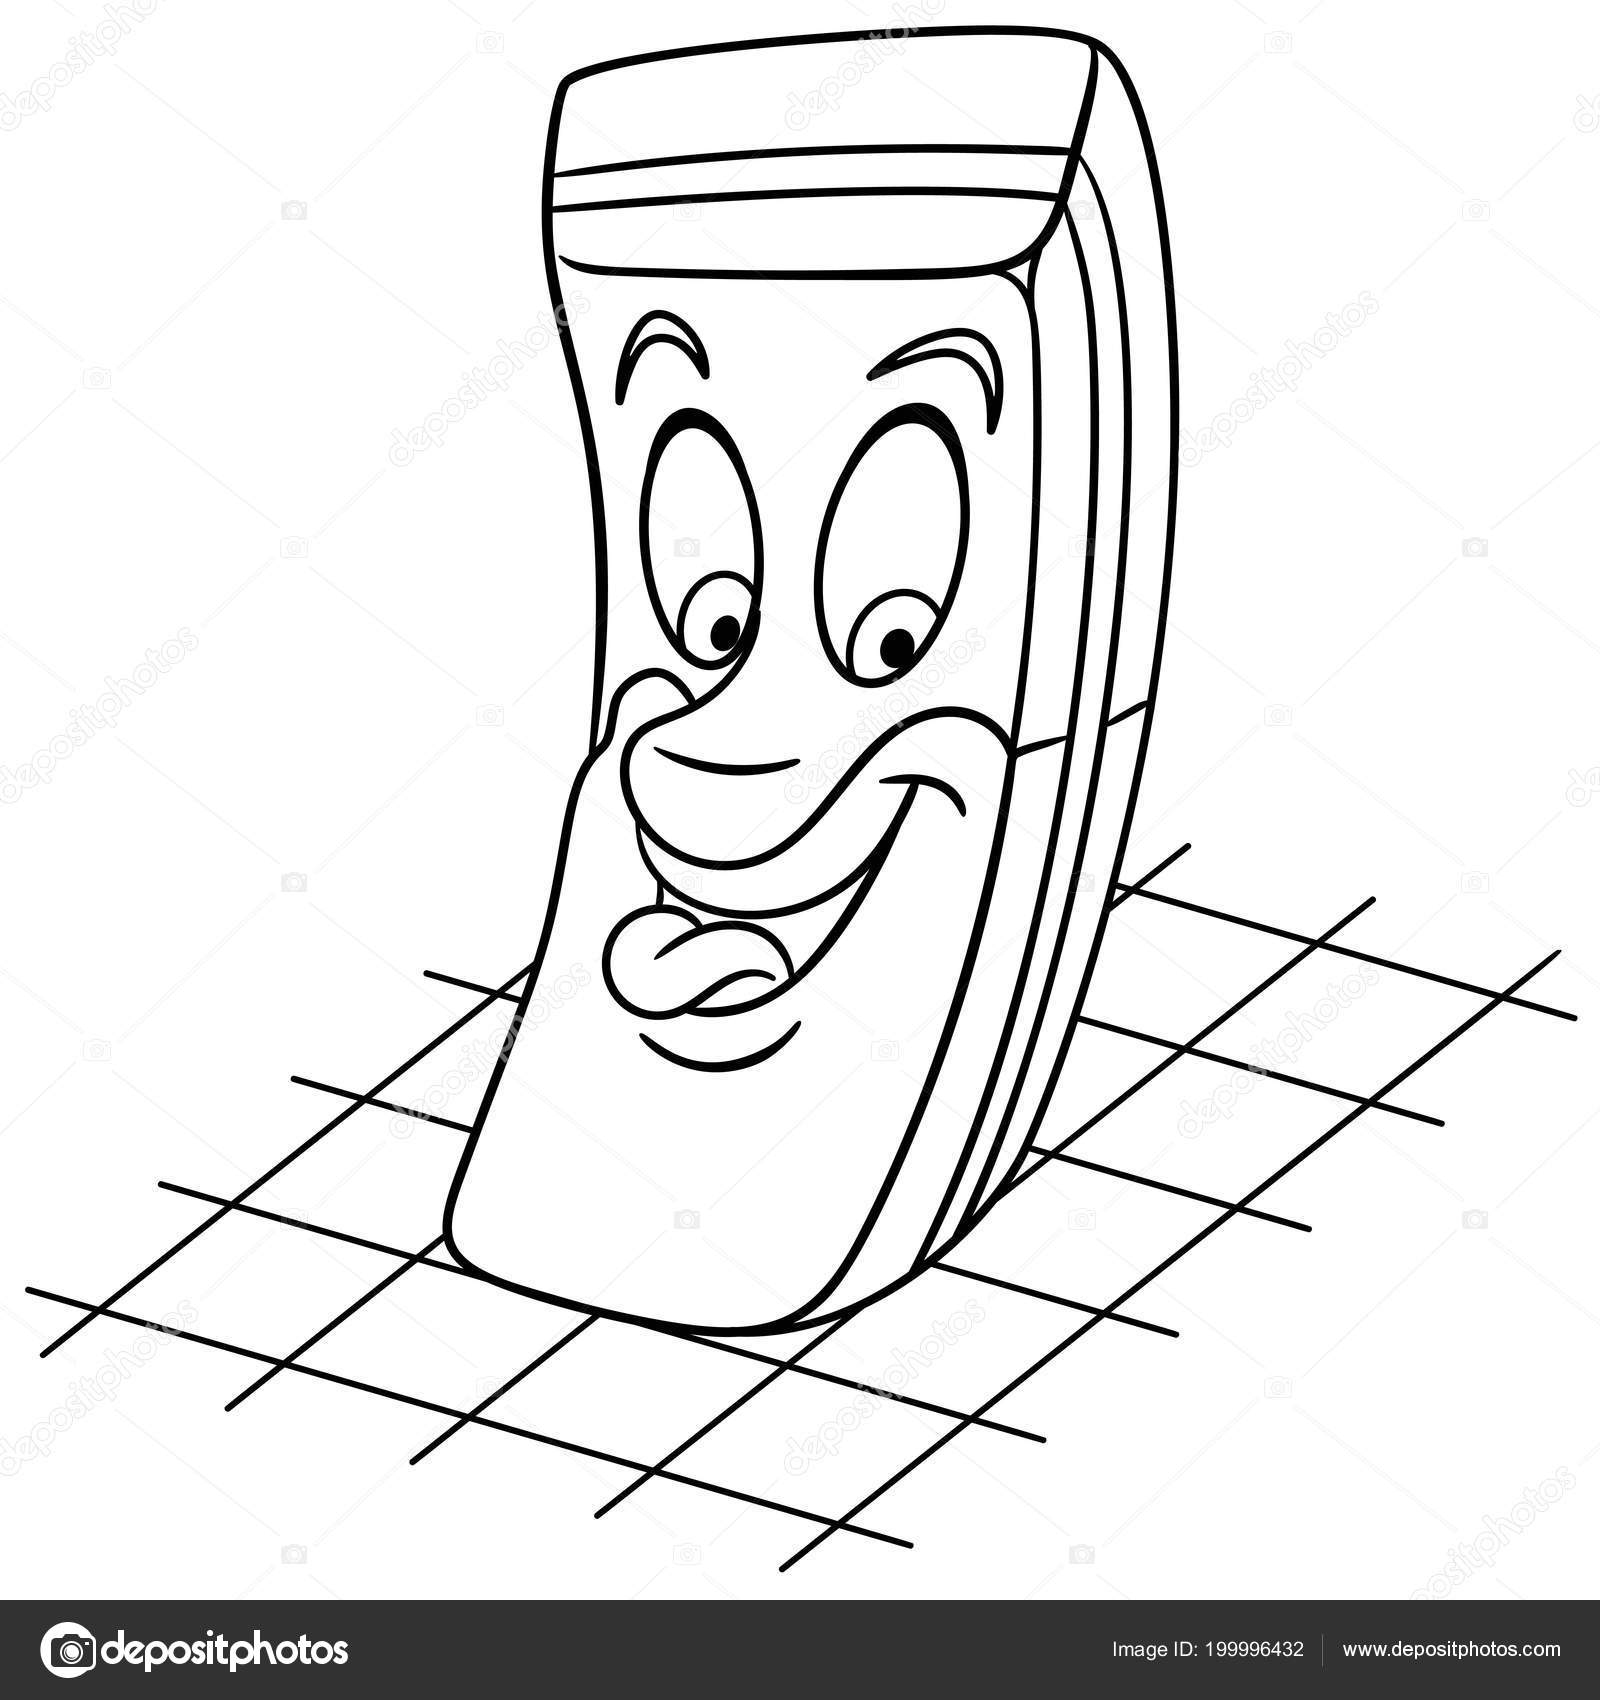 Rubber Eraser Coloring Page Colouring Picture Coloring Book